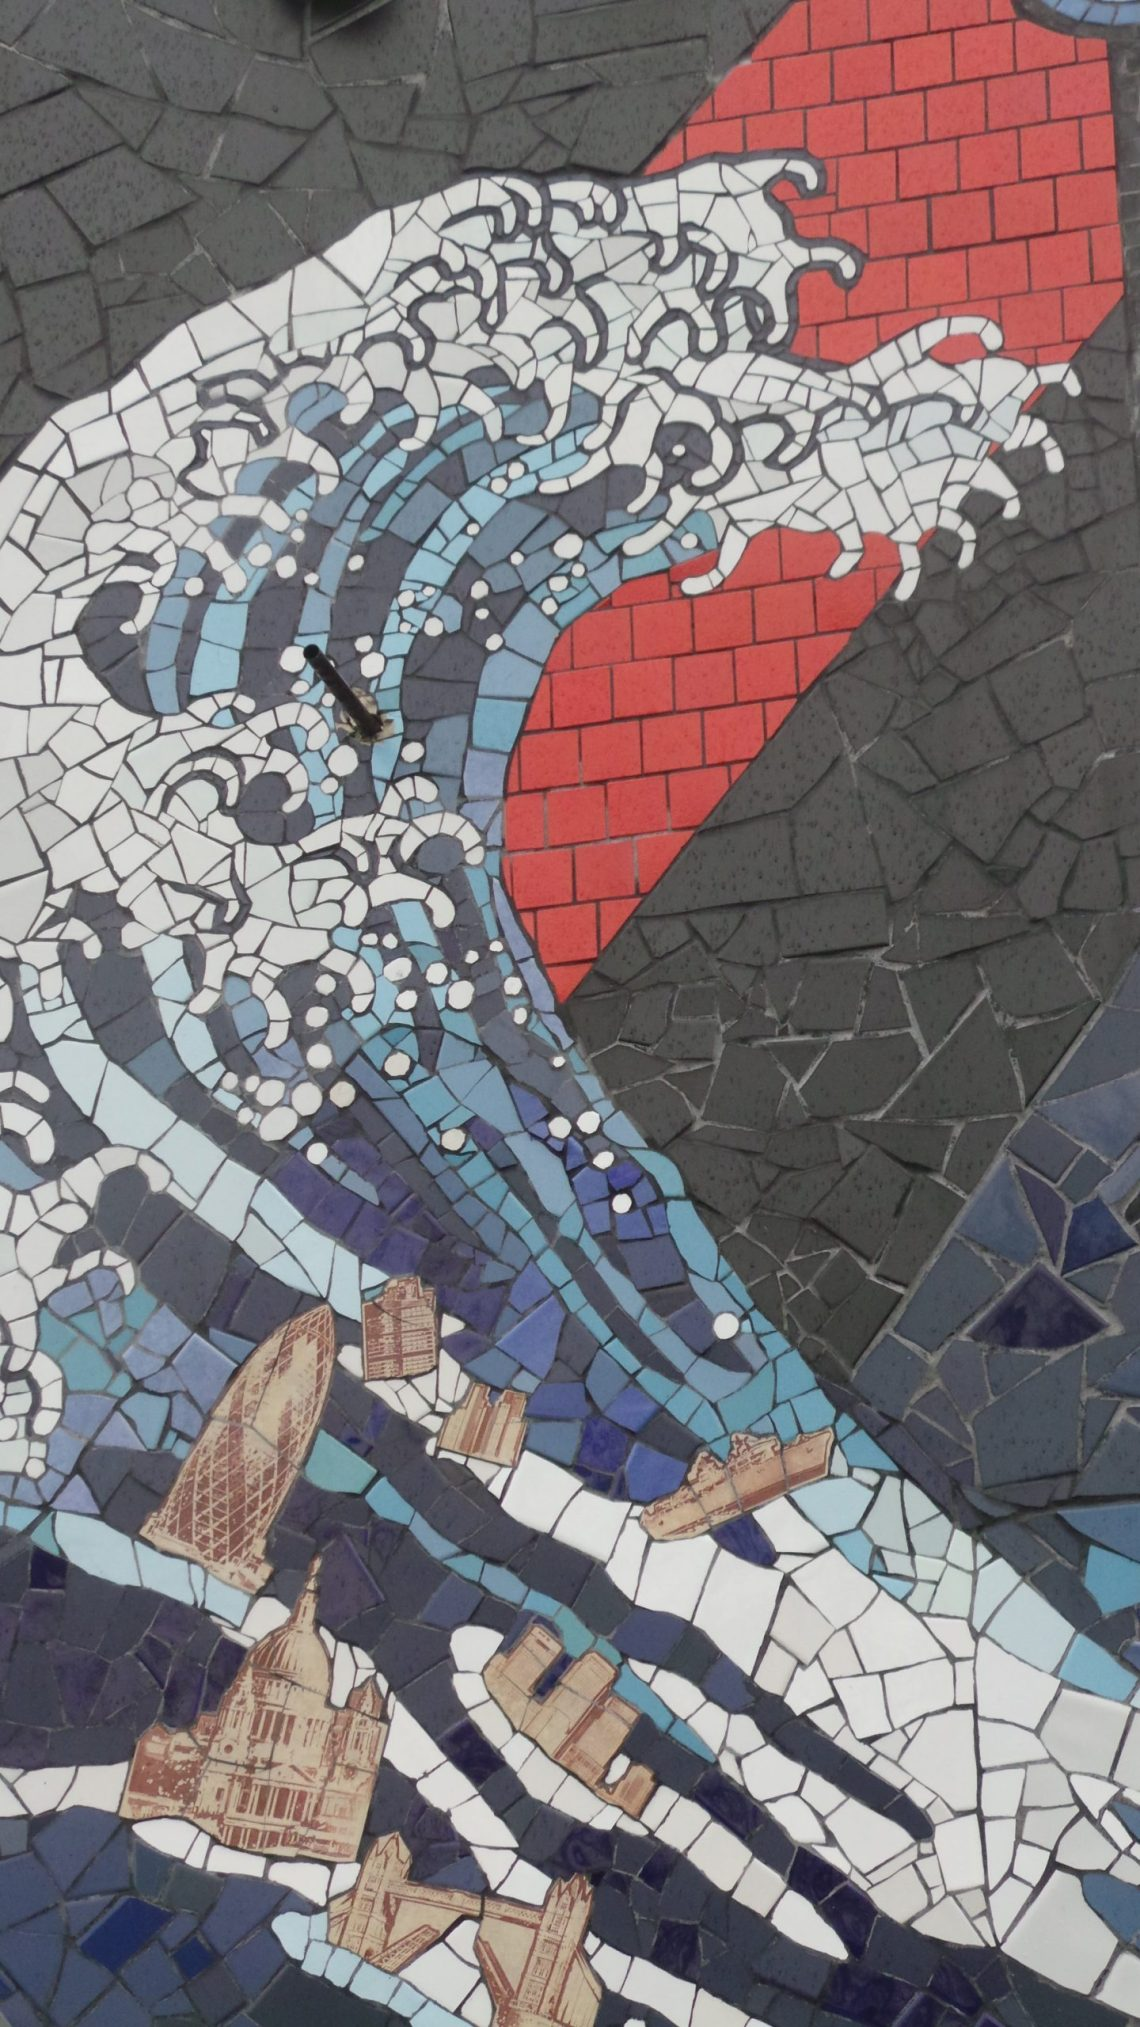 The Hokusai wave on the back of the mosaic house